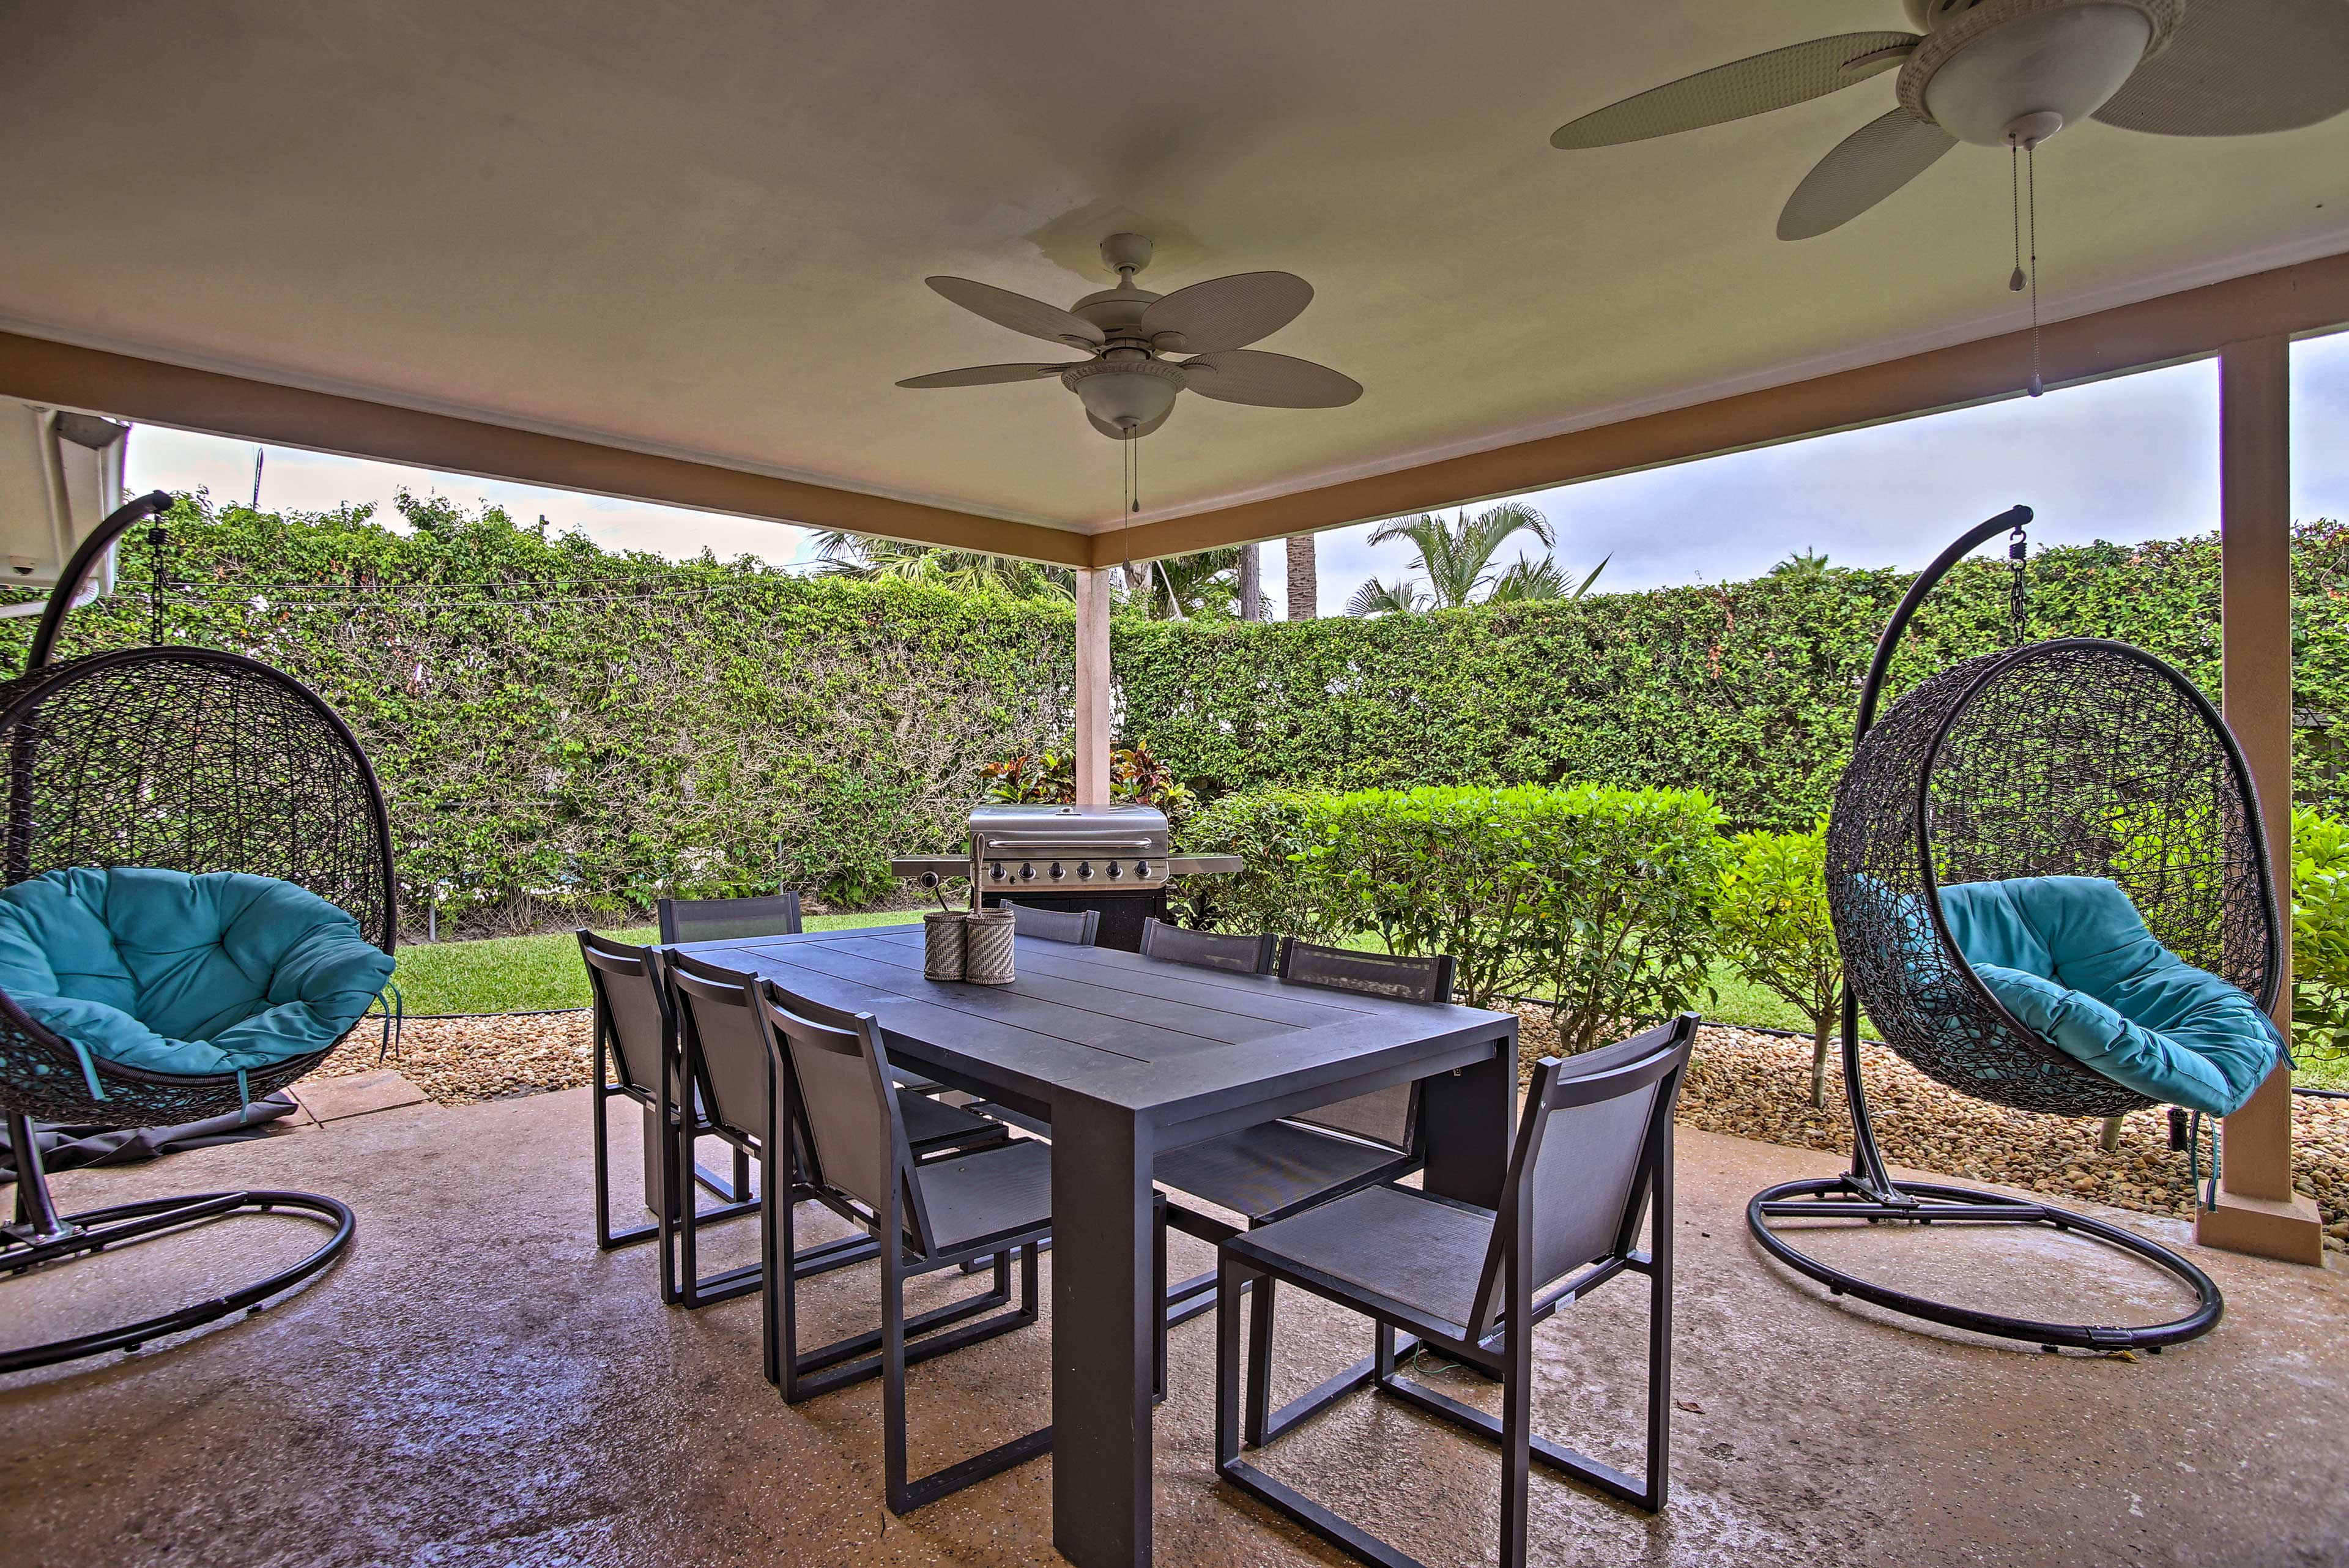 The furnished patio is the perfect place to relax!